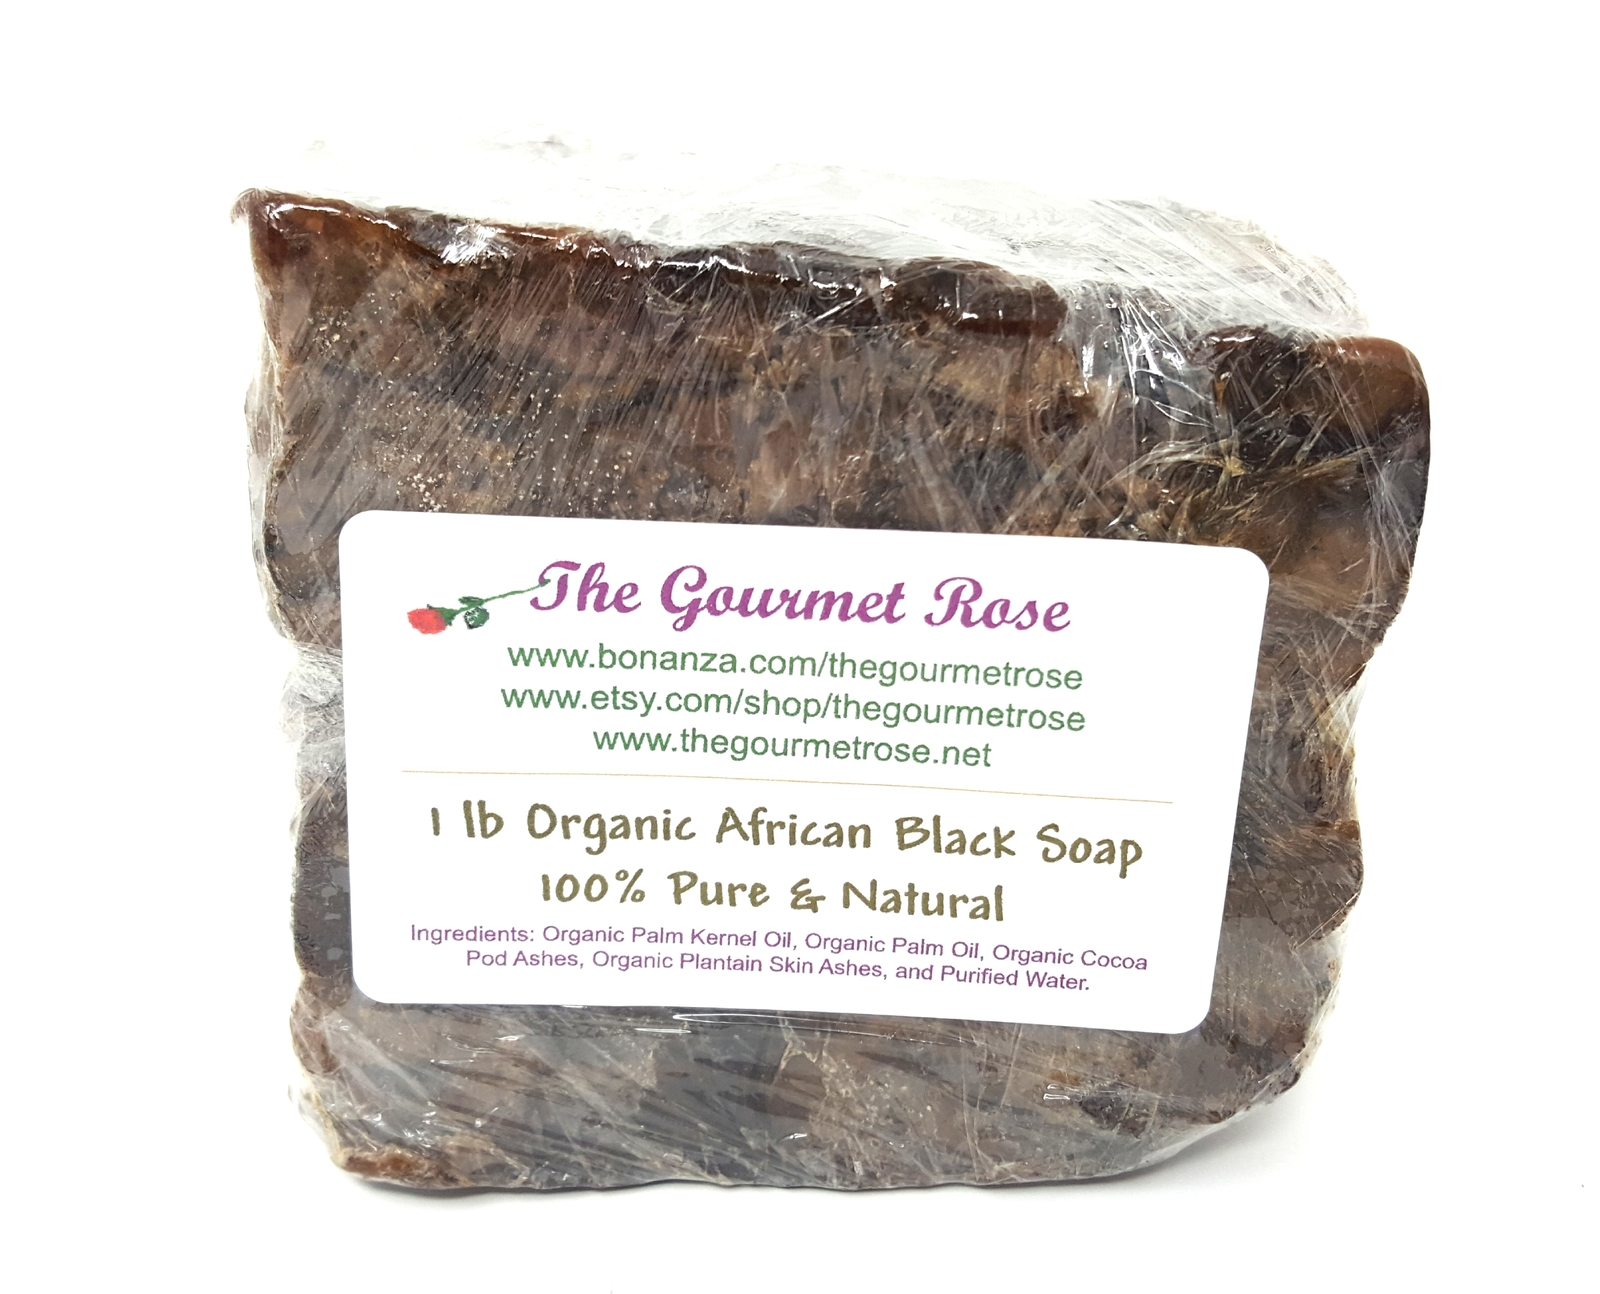 1 lb ORGANIC AFRICAN BLACK SOAP 100% Natural Anti Acne Blemish Remedy Complexion